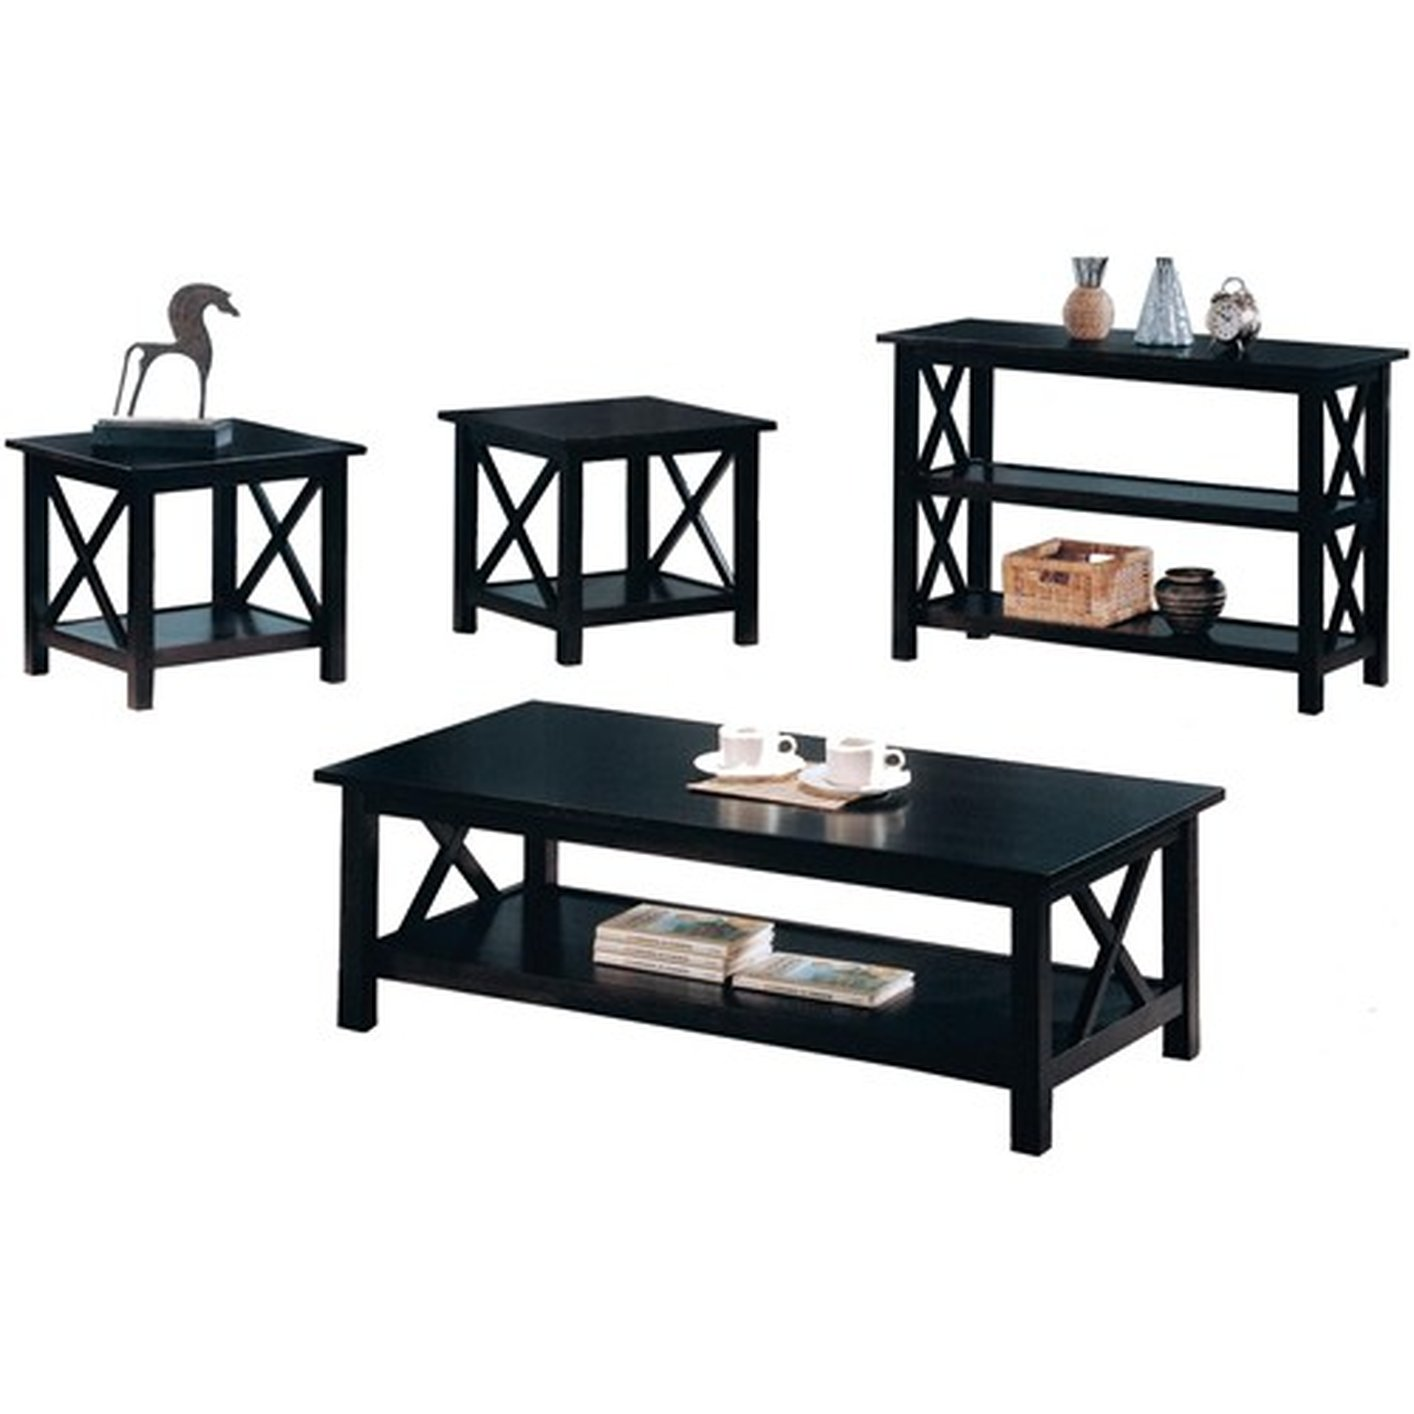 black wood coffee table set  stealasofa furniture outlet los  -  black wood coffee table set